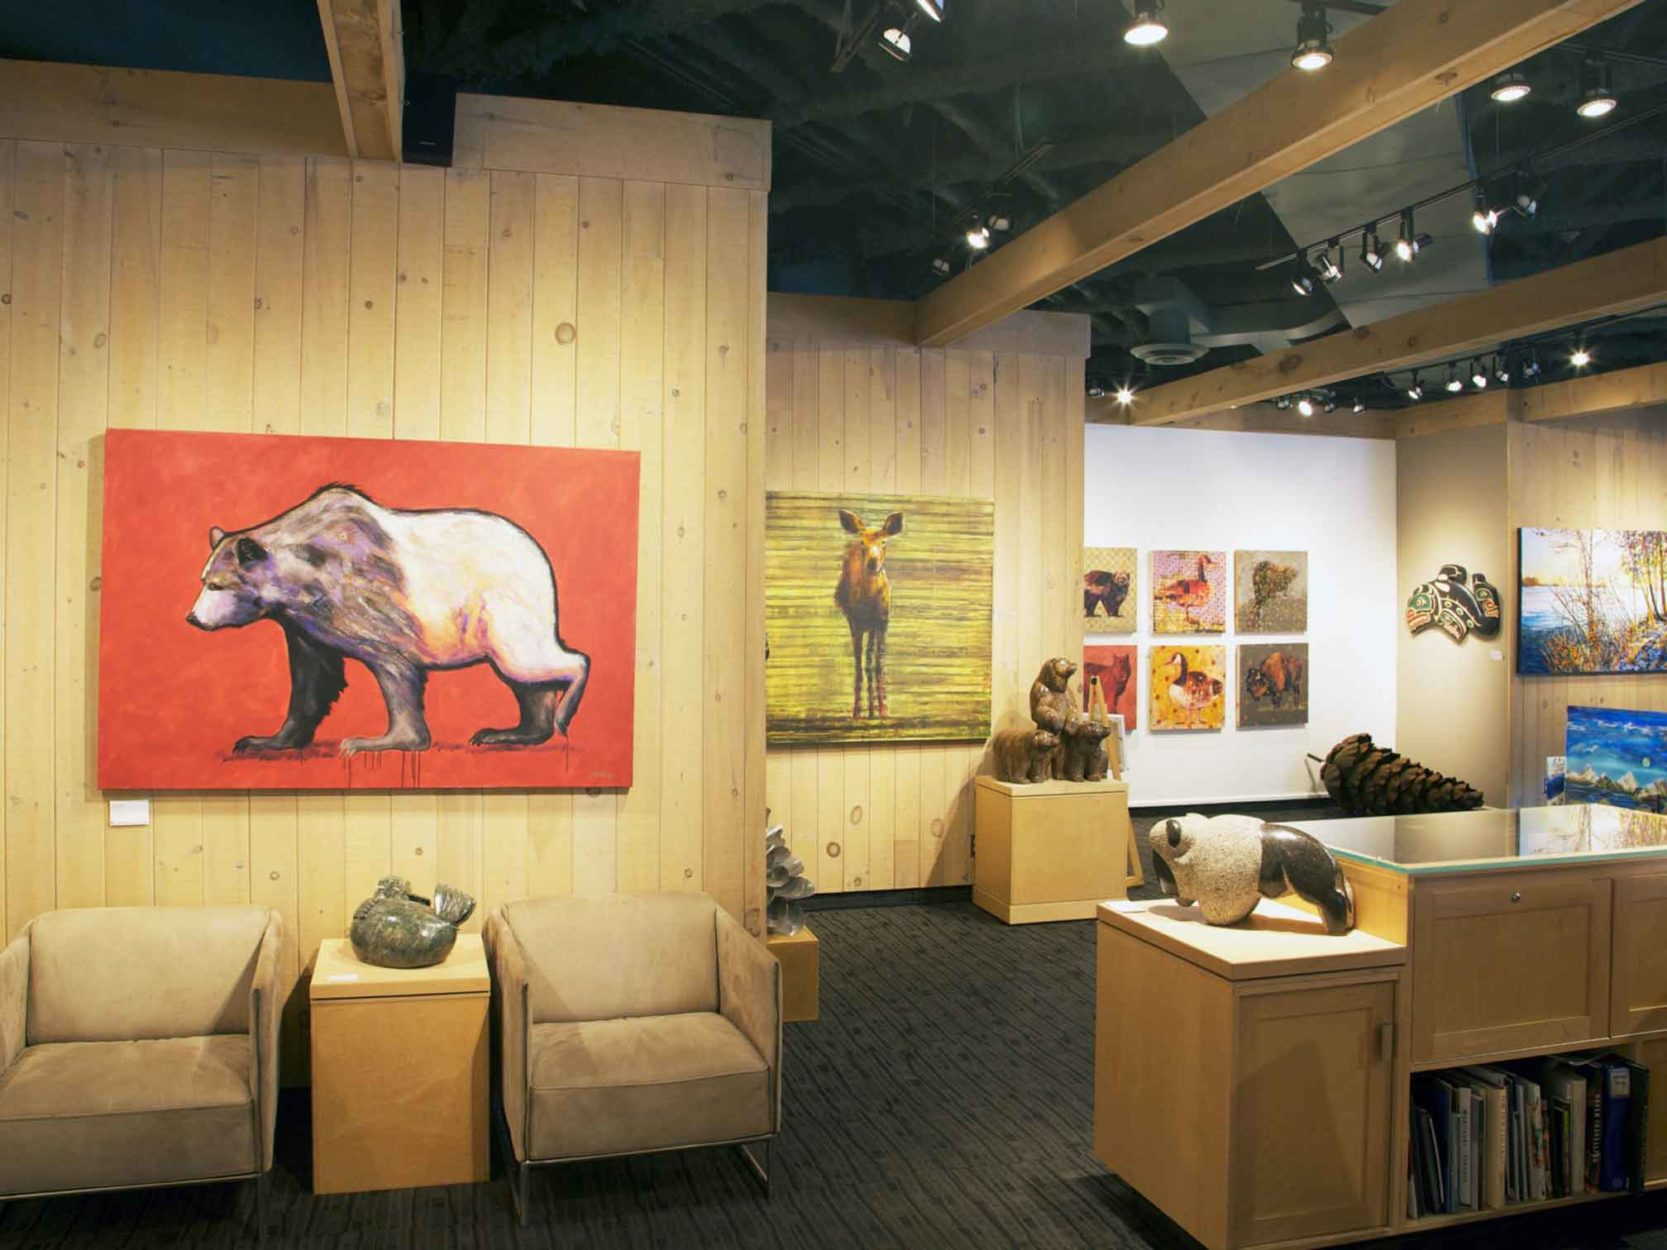 Canada House Gallery: New Owners and Classic Art in Banff on Where Rockies